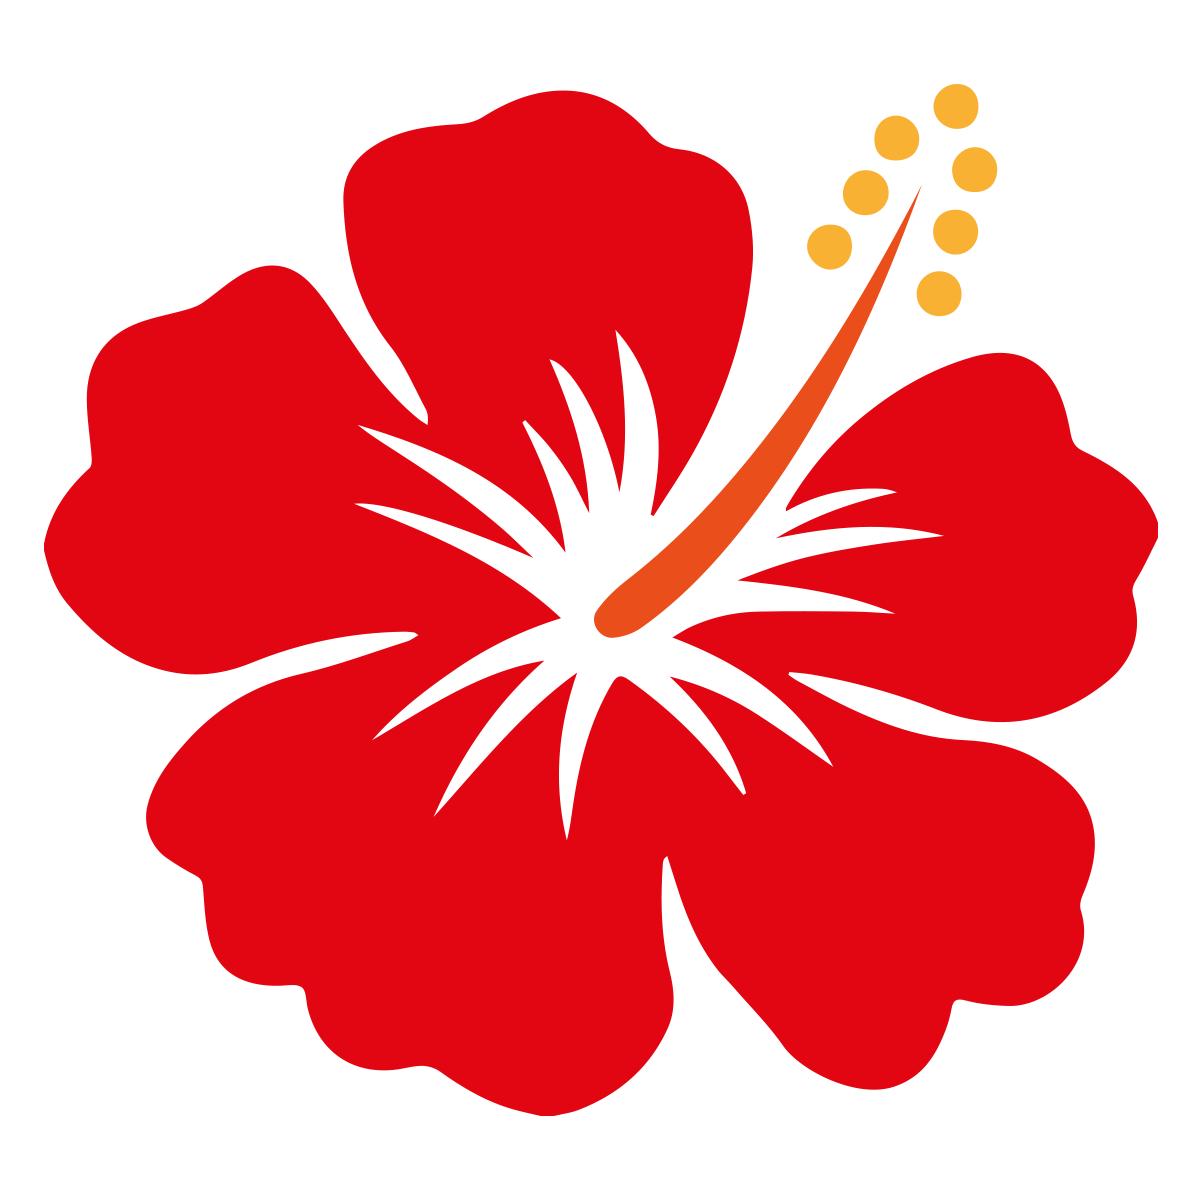 Hibiscus Vector Free Vector Logo Hibiscus Drawing Flower Stencil Flower Silhouette